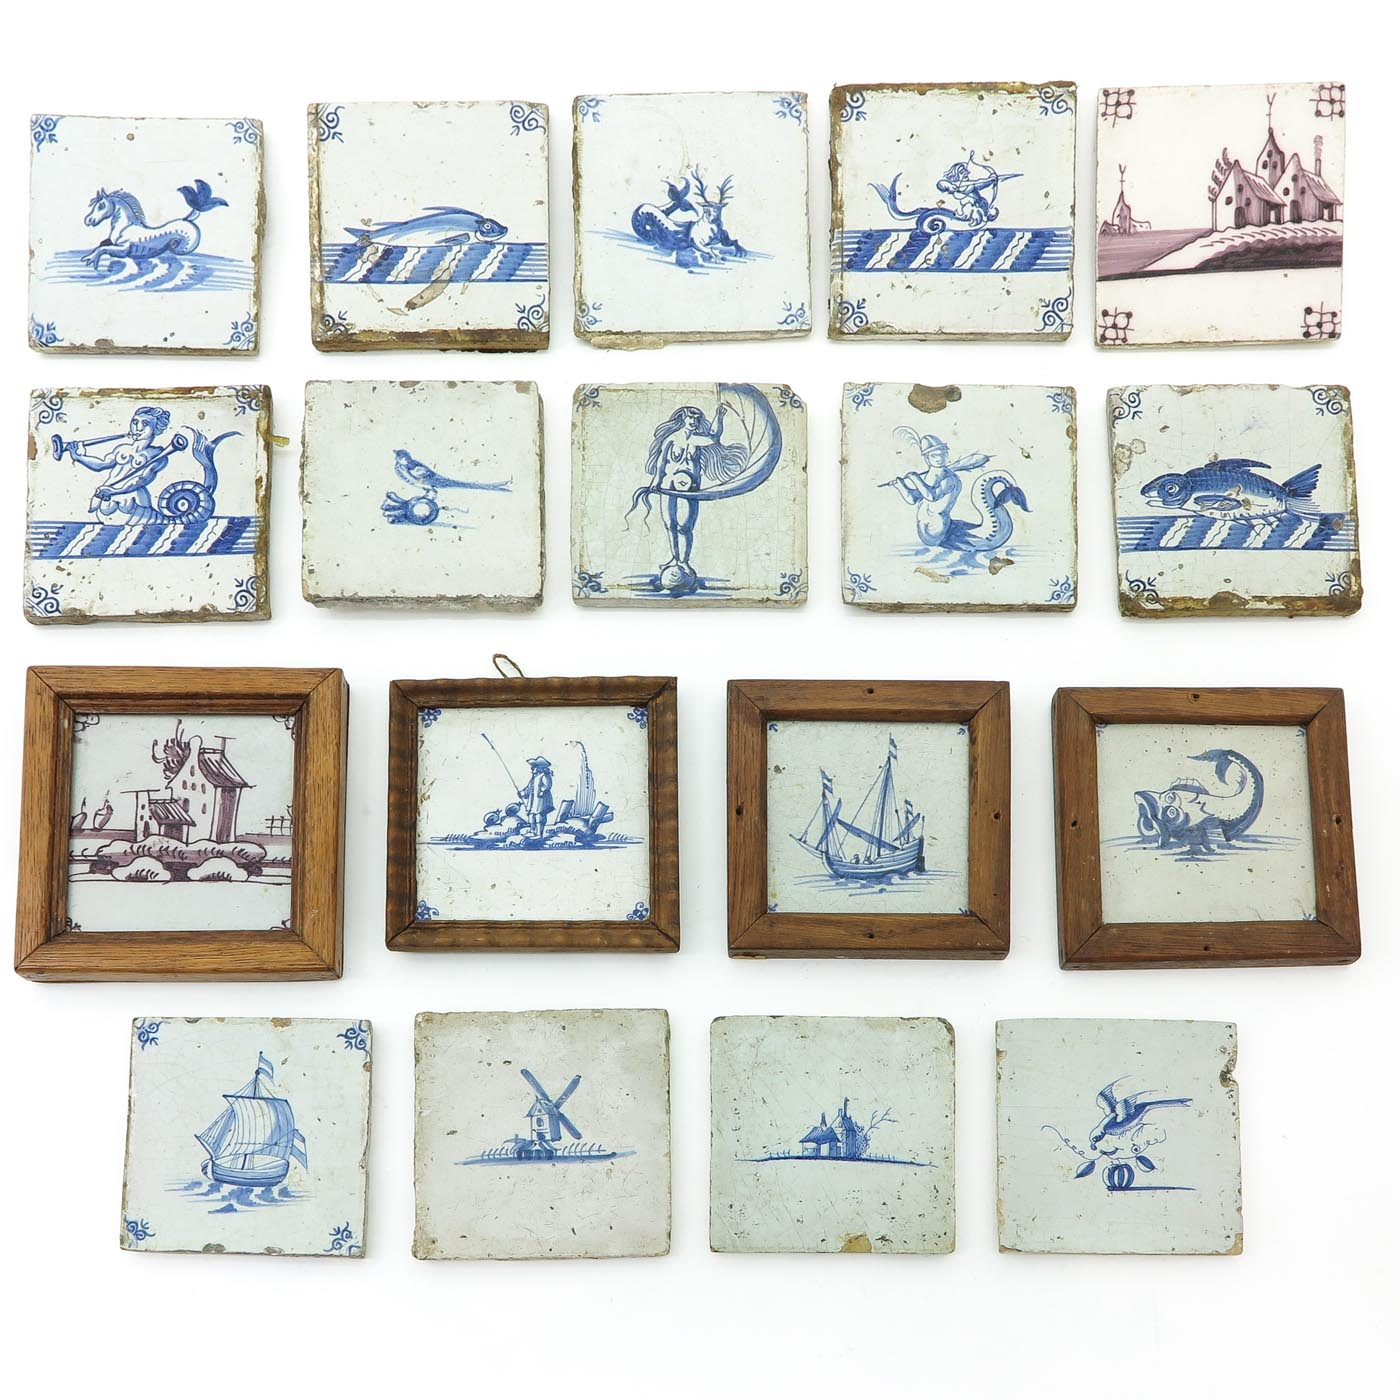 Lot 1036 - A Collection of 17th - 18th Century Tiles